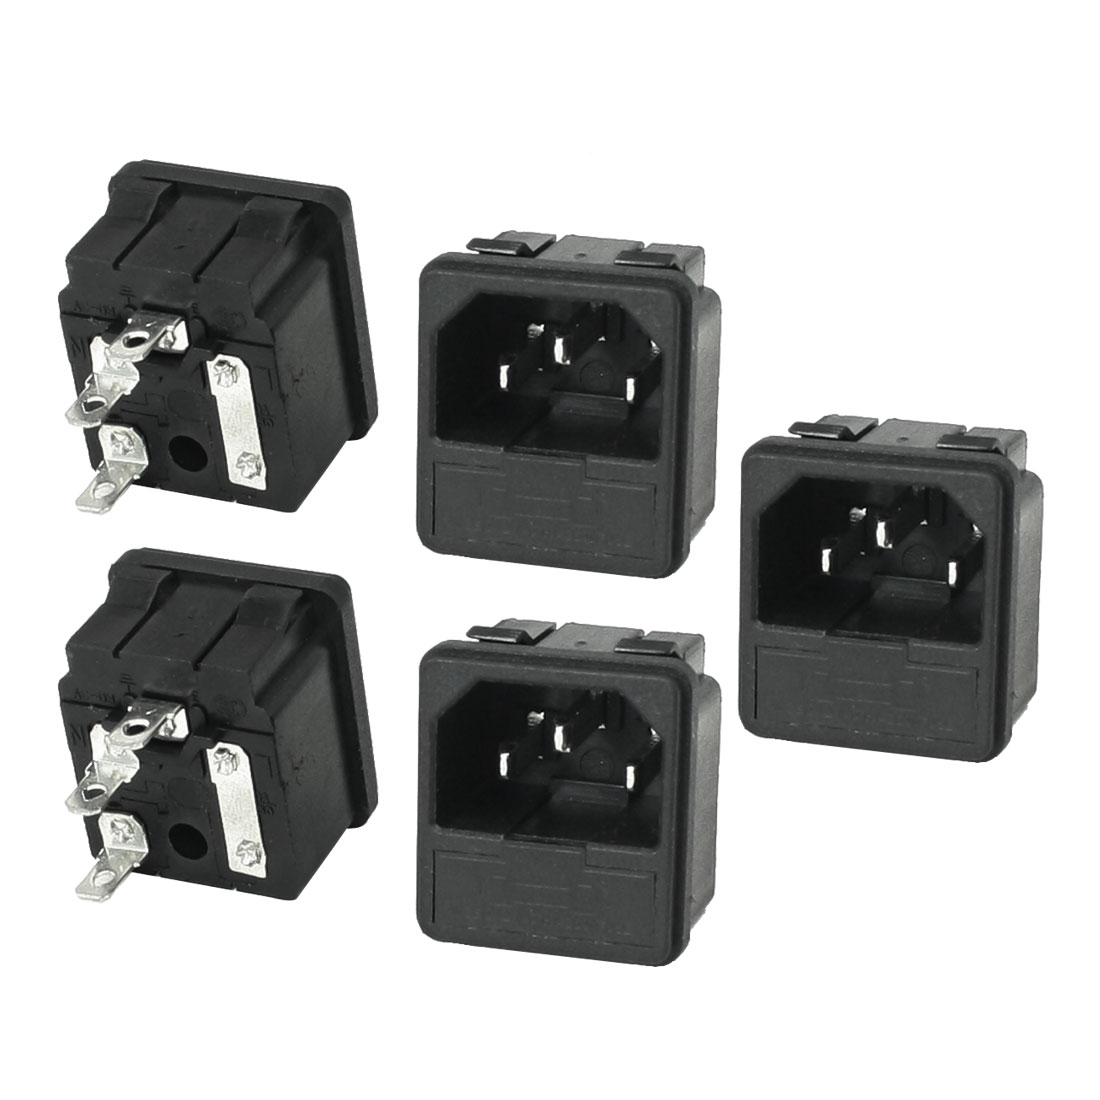 5 Pcs Panel Mounted 3P C14 Inlet Male Power Connector 10A AC 250V